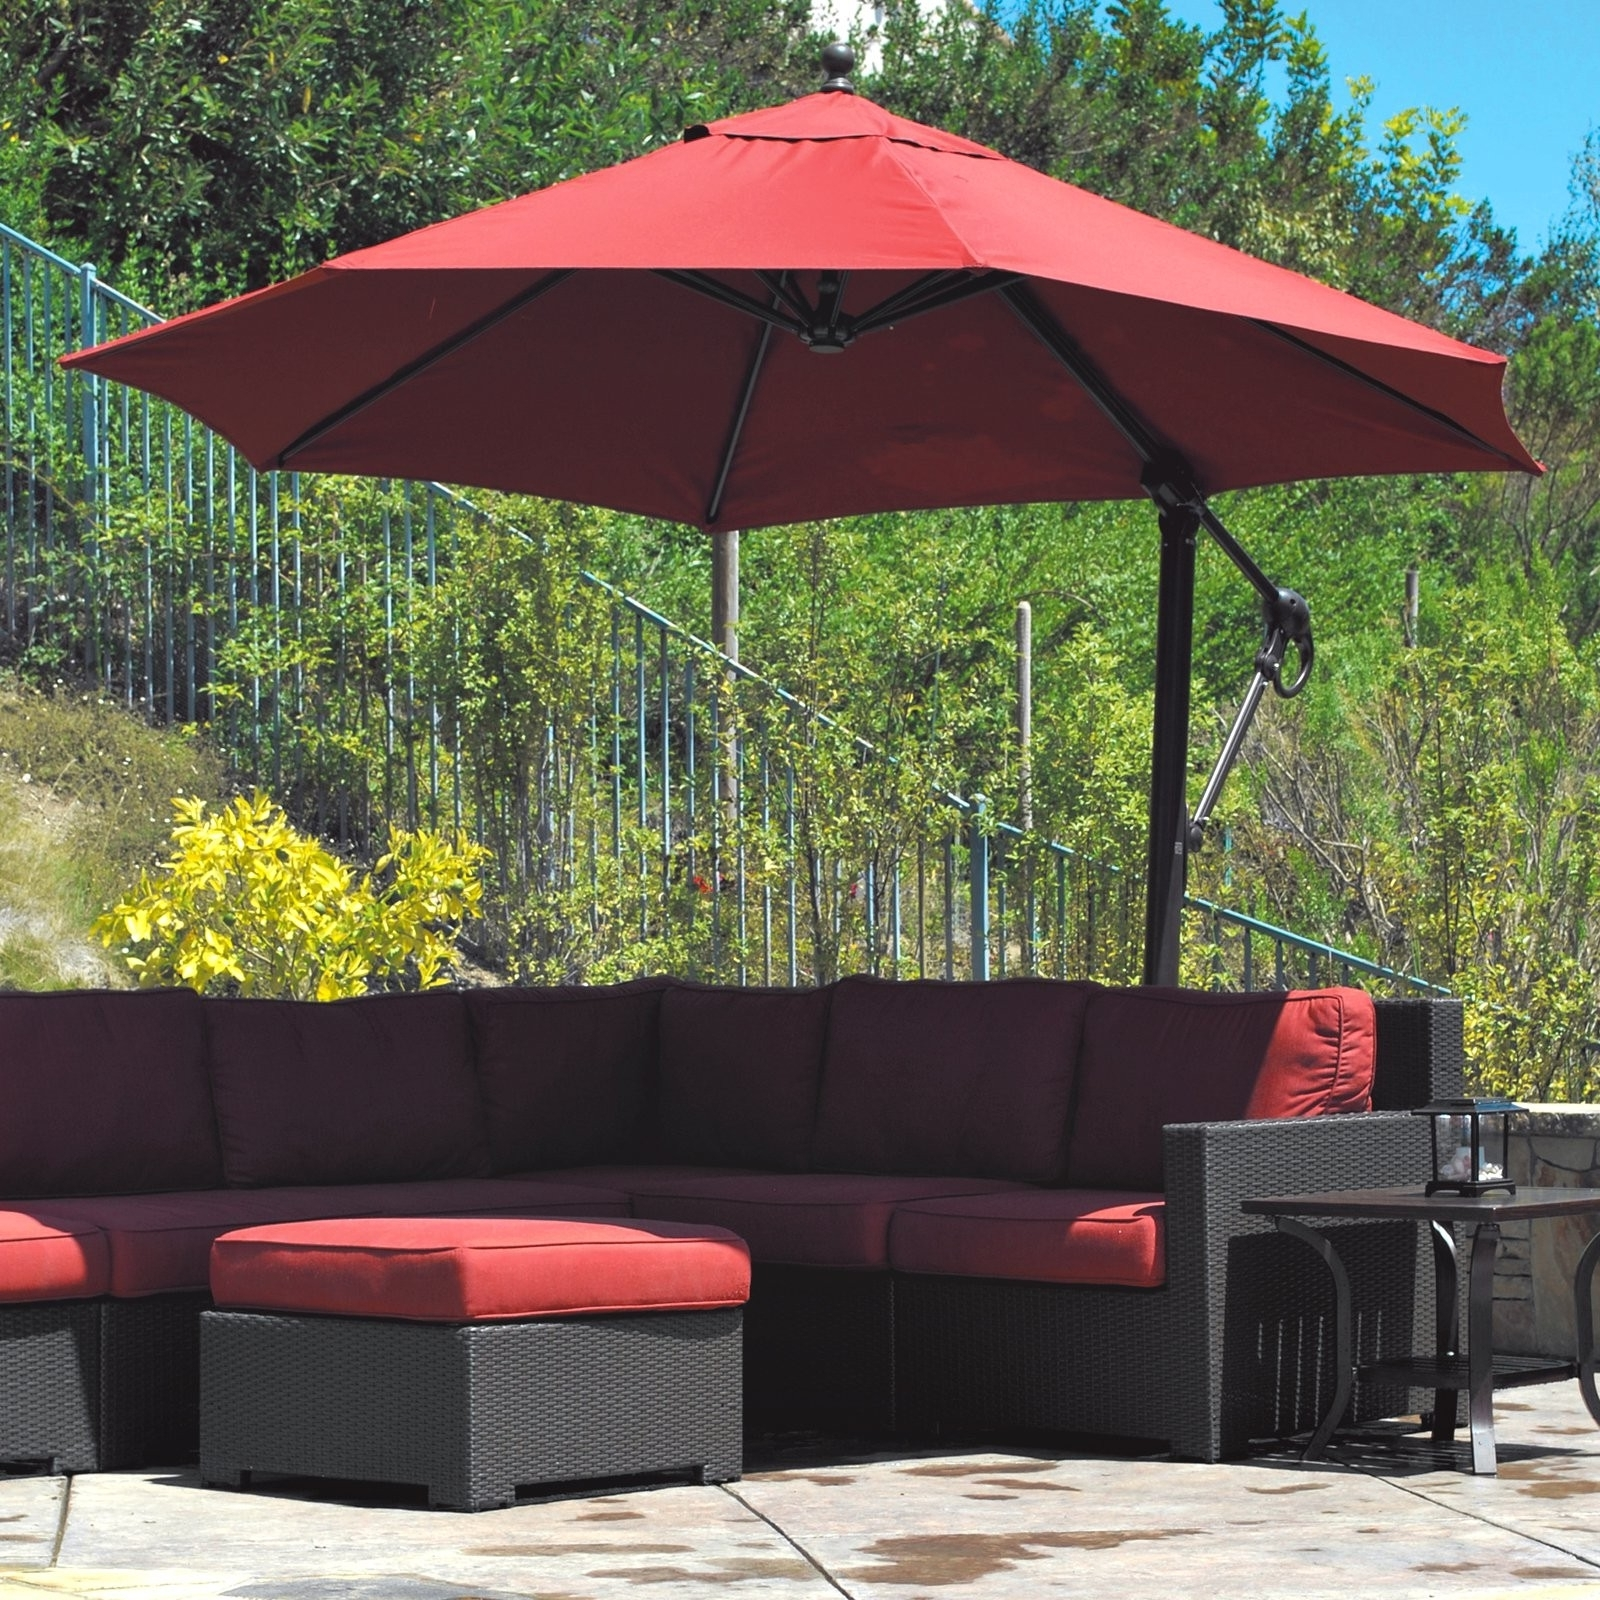 Latest Red Sunbrella Patio Umbrellas Pertaining To Sunbrella Patio Umbrella Lovely Outdoor Ft Patio Umbrella Outdoor (View 7 of 20)